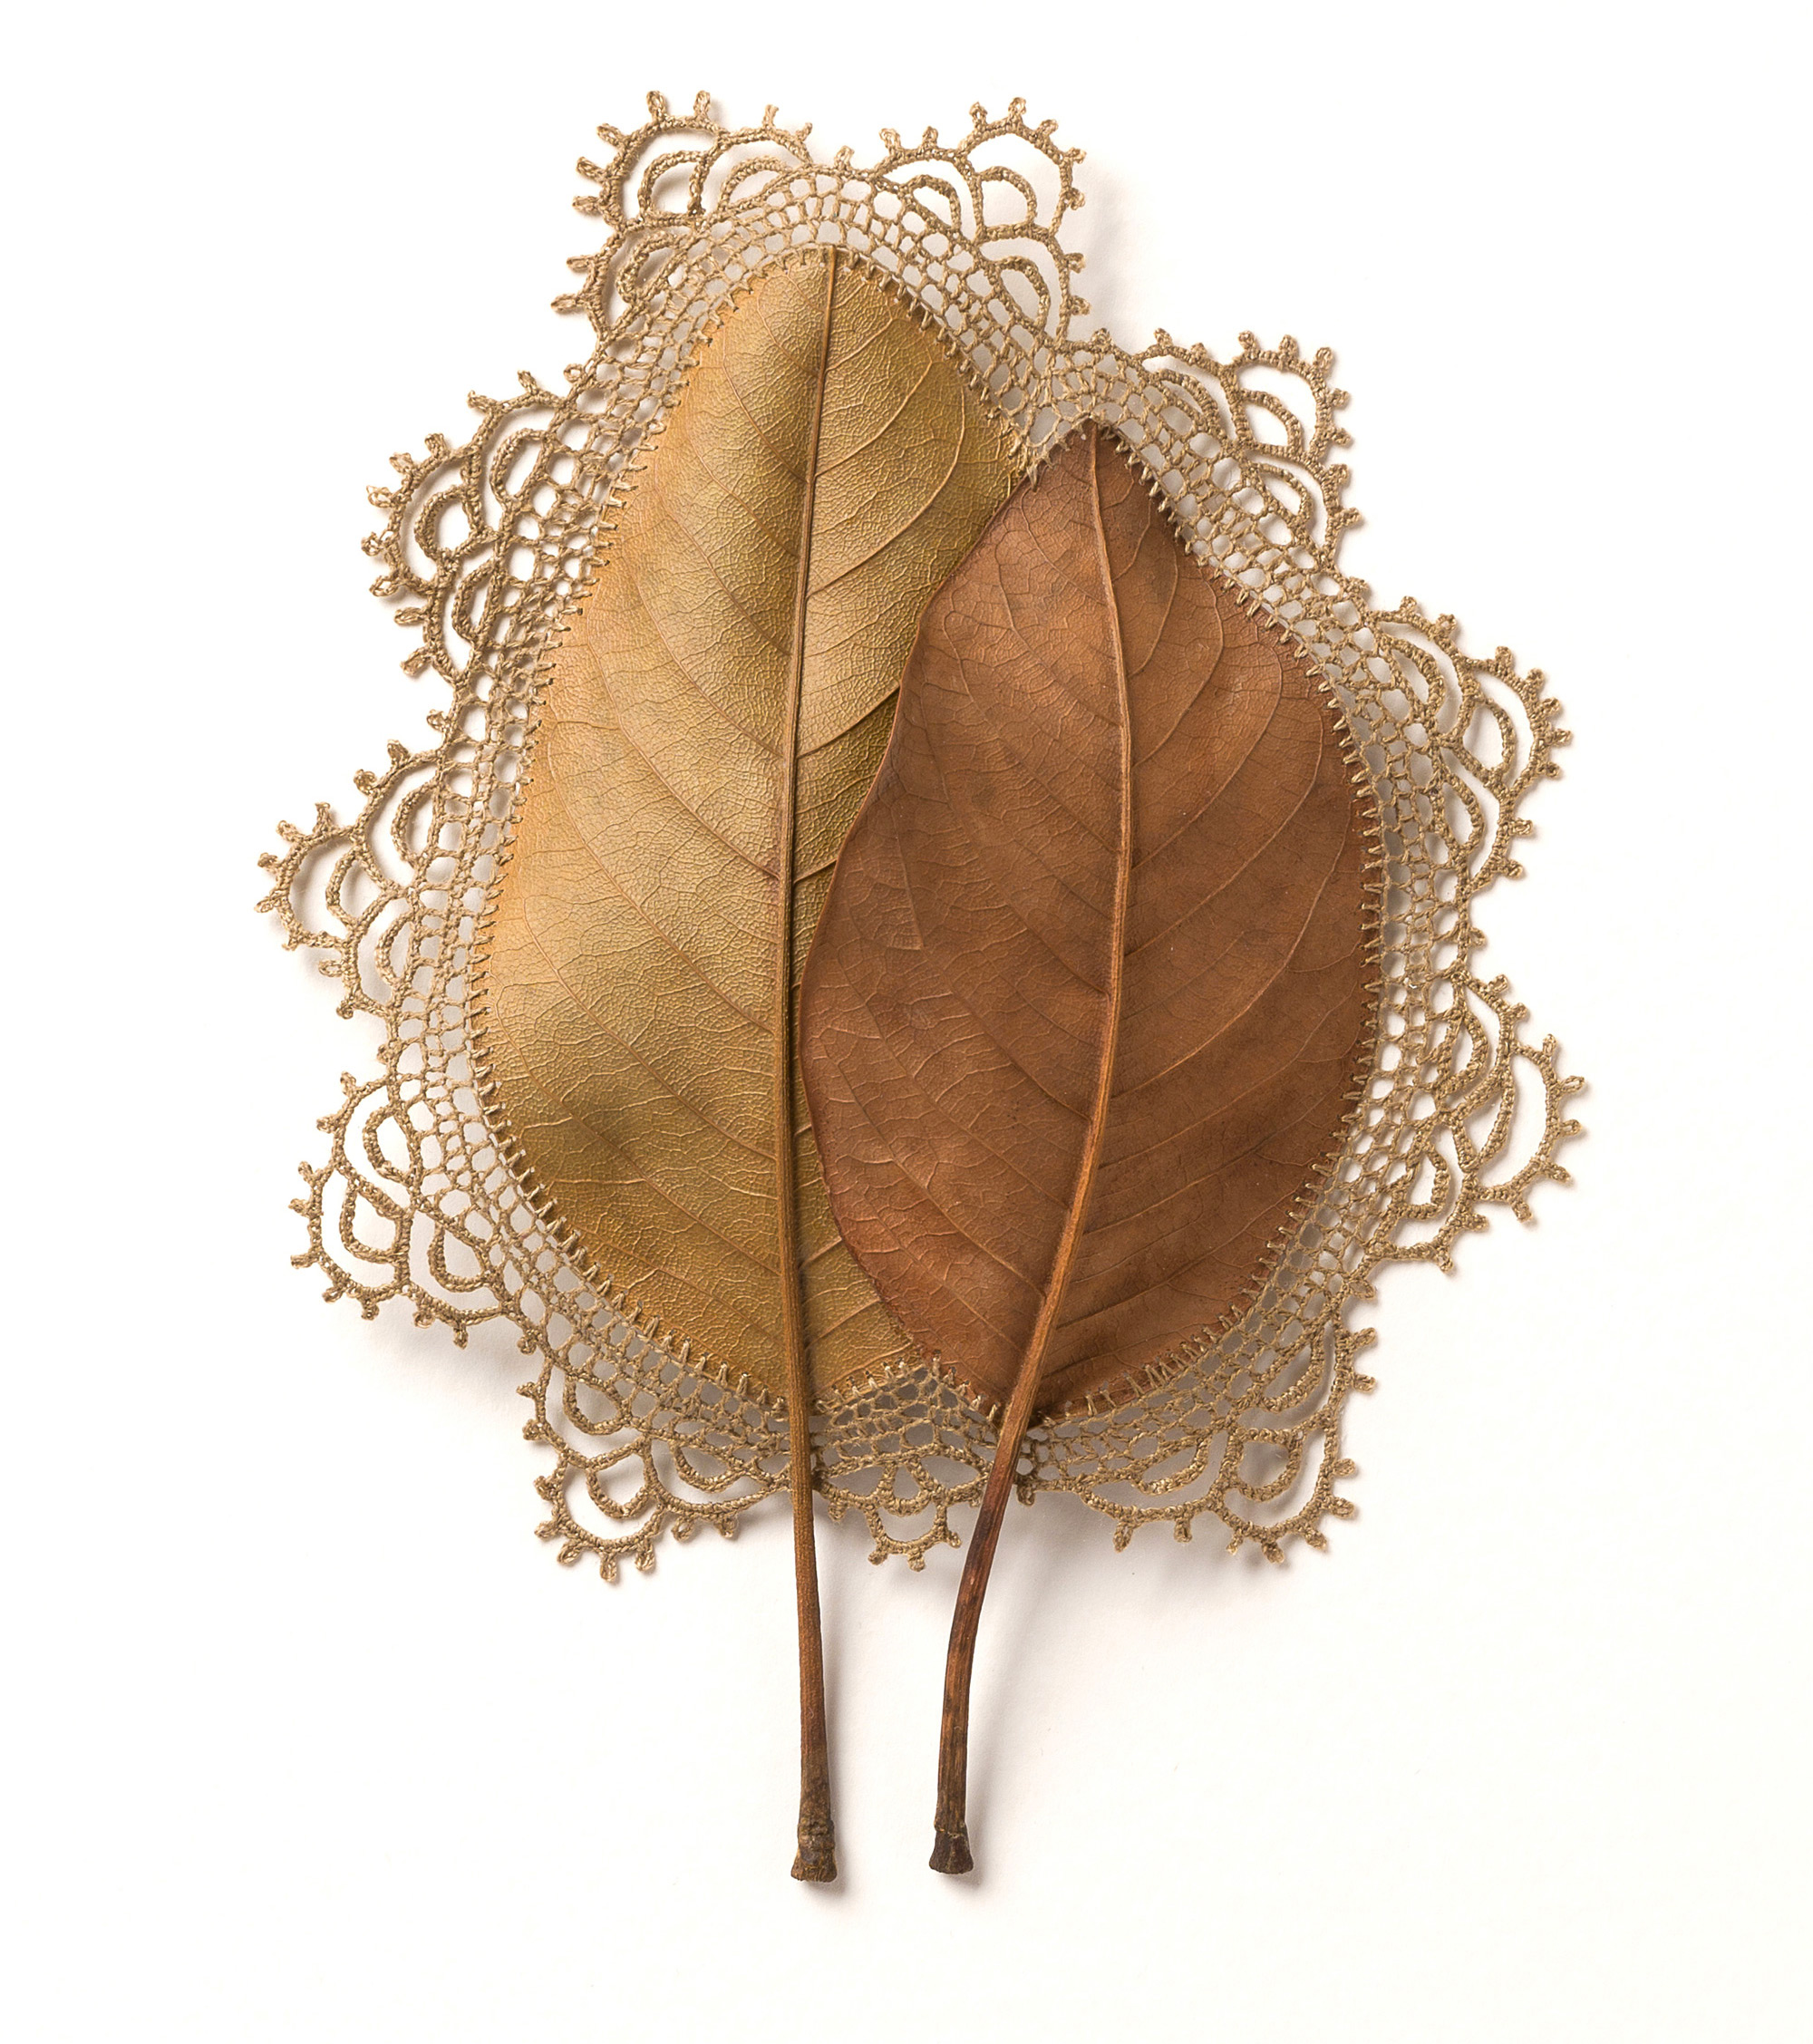 Found Leaves  with Delicate Crochet Embellishments by Susanna Bauer | Colossal